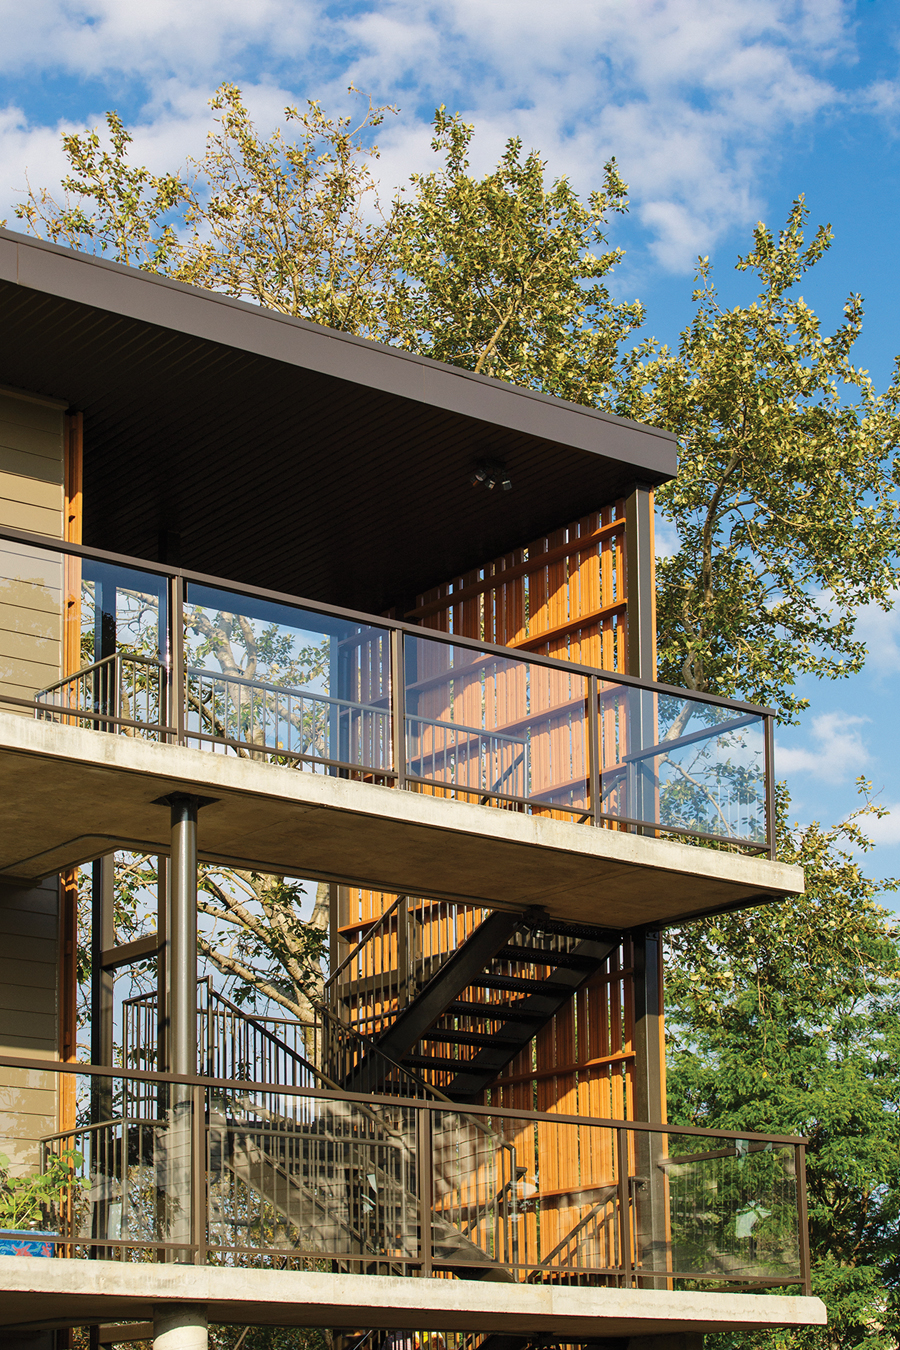 A sheltered, open-air stairway provides access to the individual housing units.